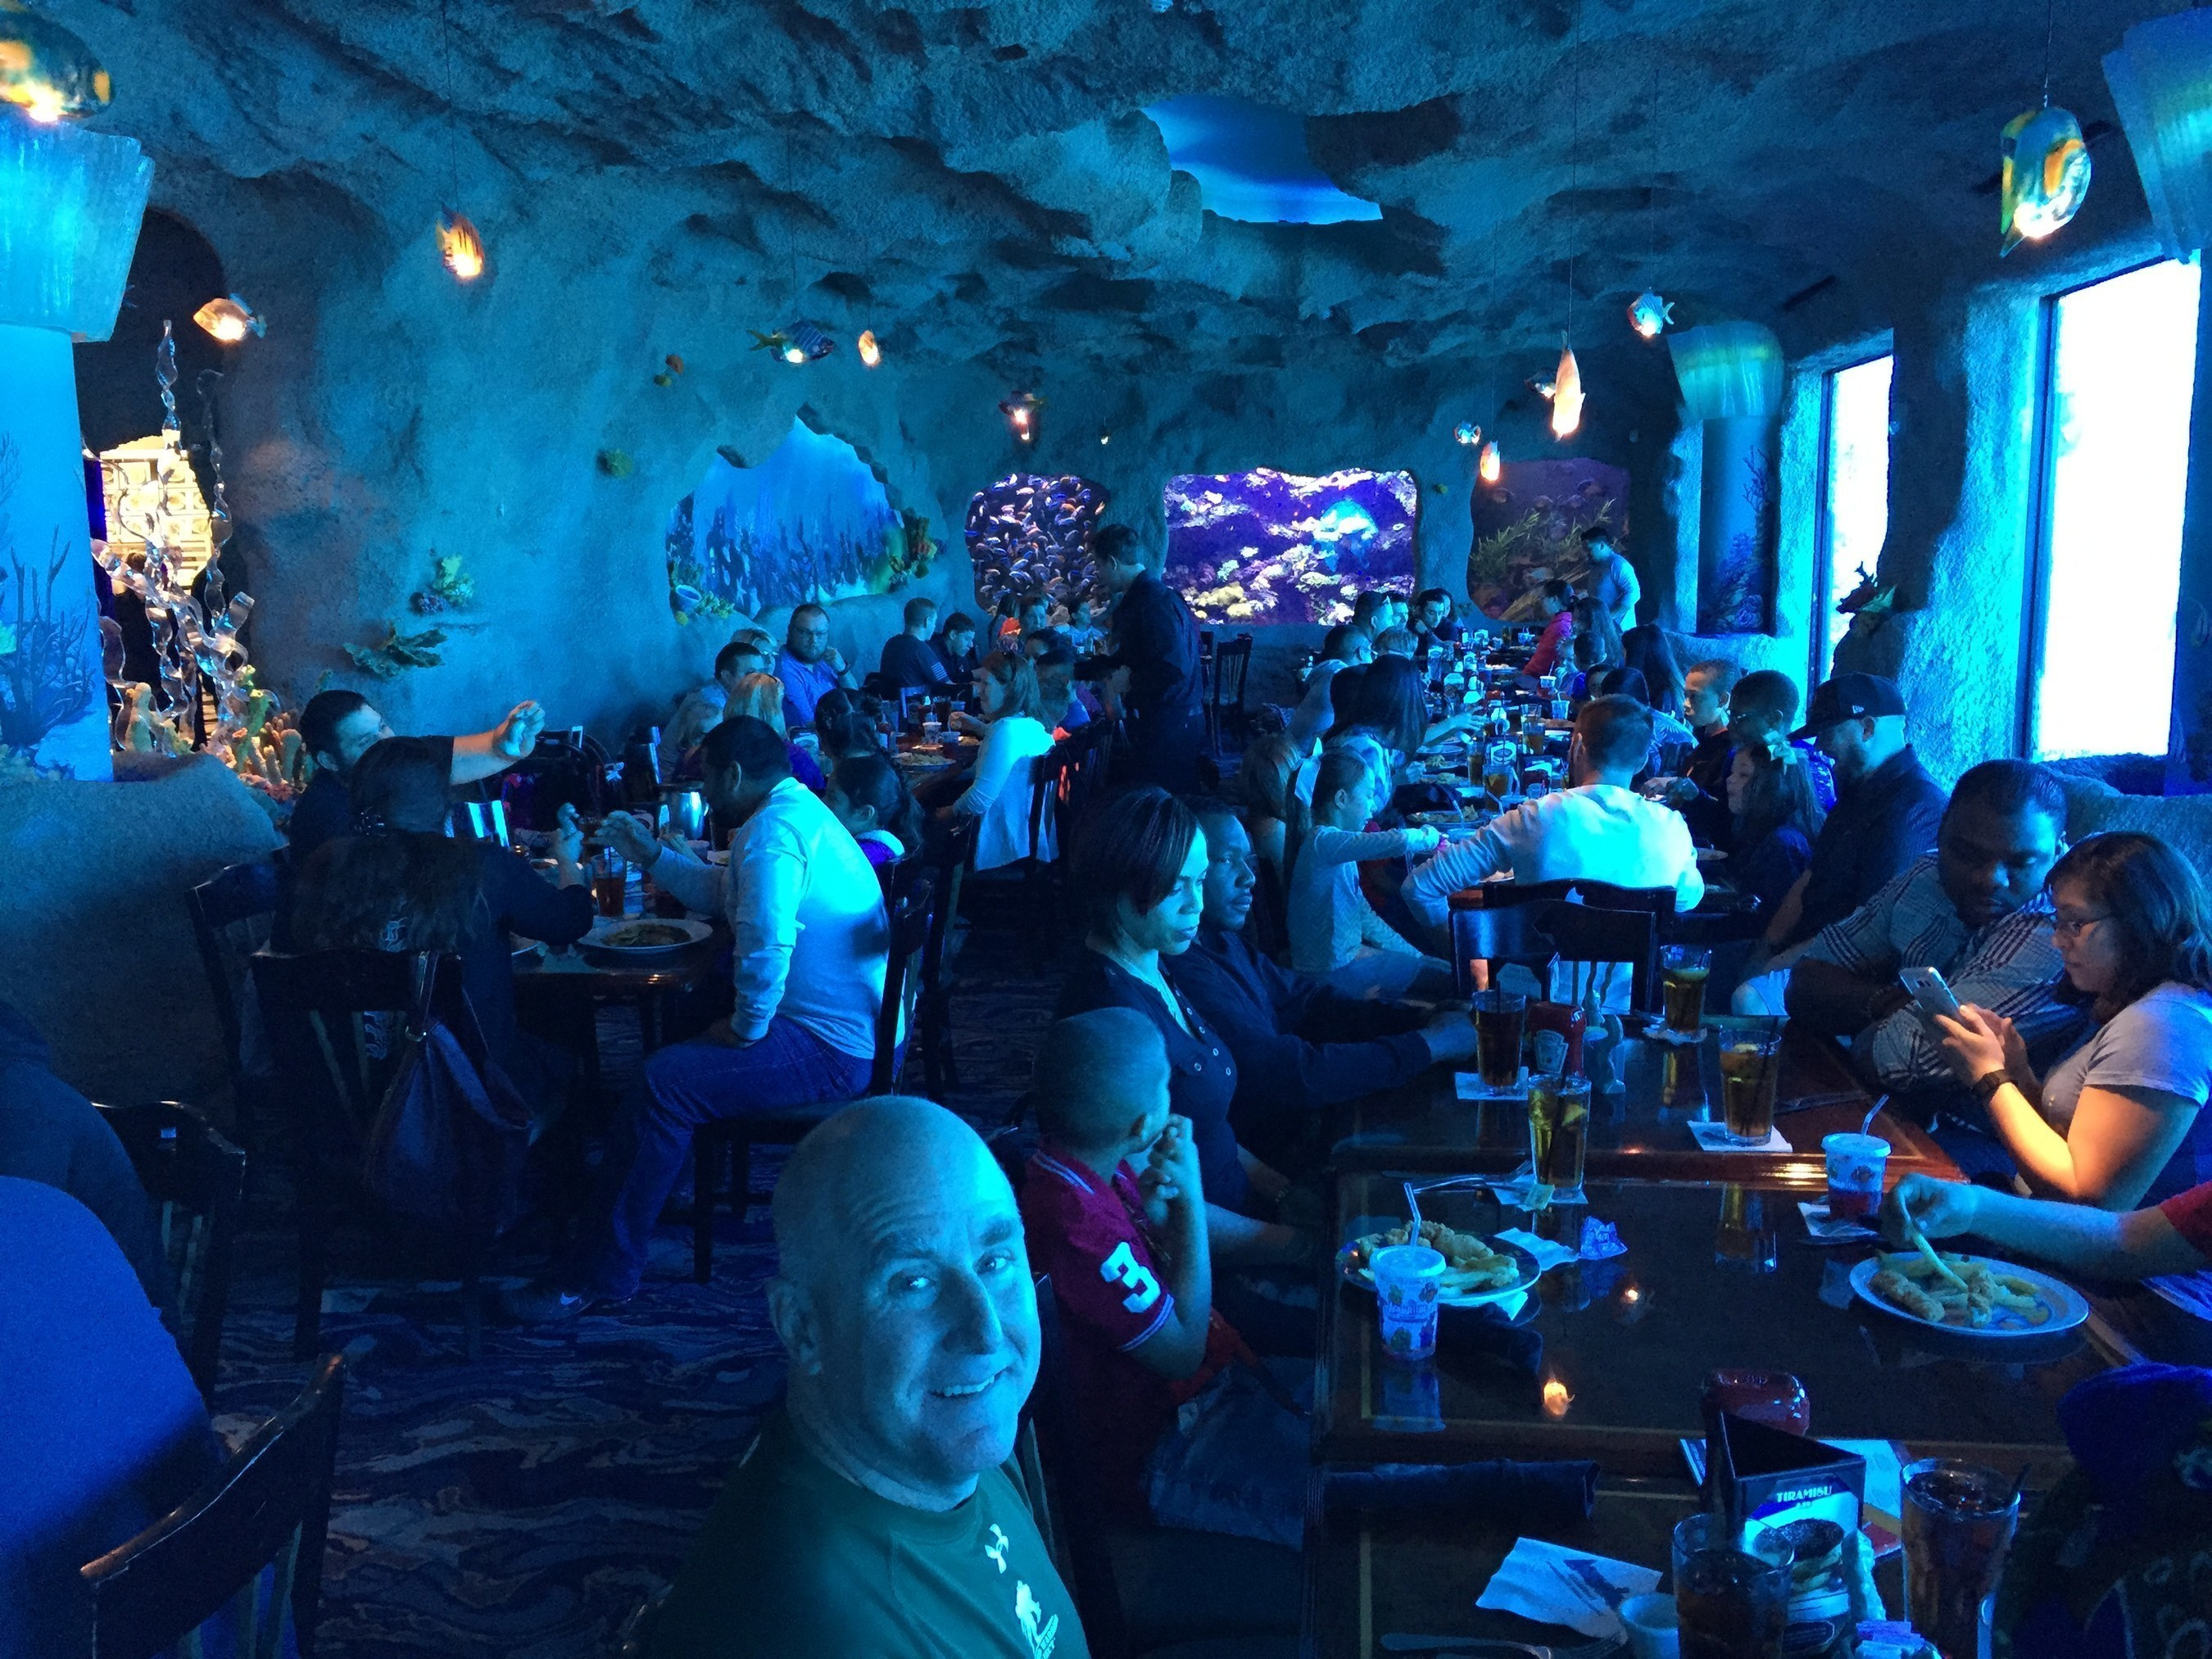 Wounded Warrior Project Alumni and their families enjoy a meal among the fishes at the Kemah Aquarium, during an Alumni Program event.